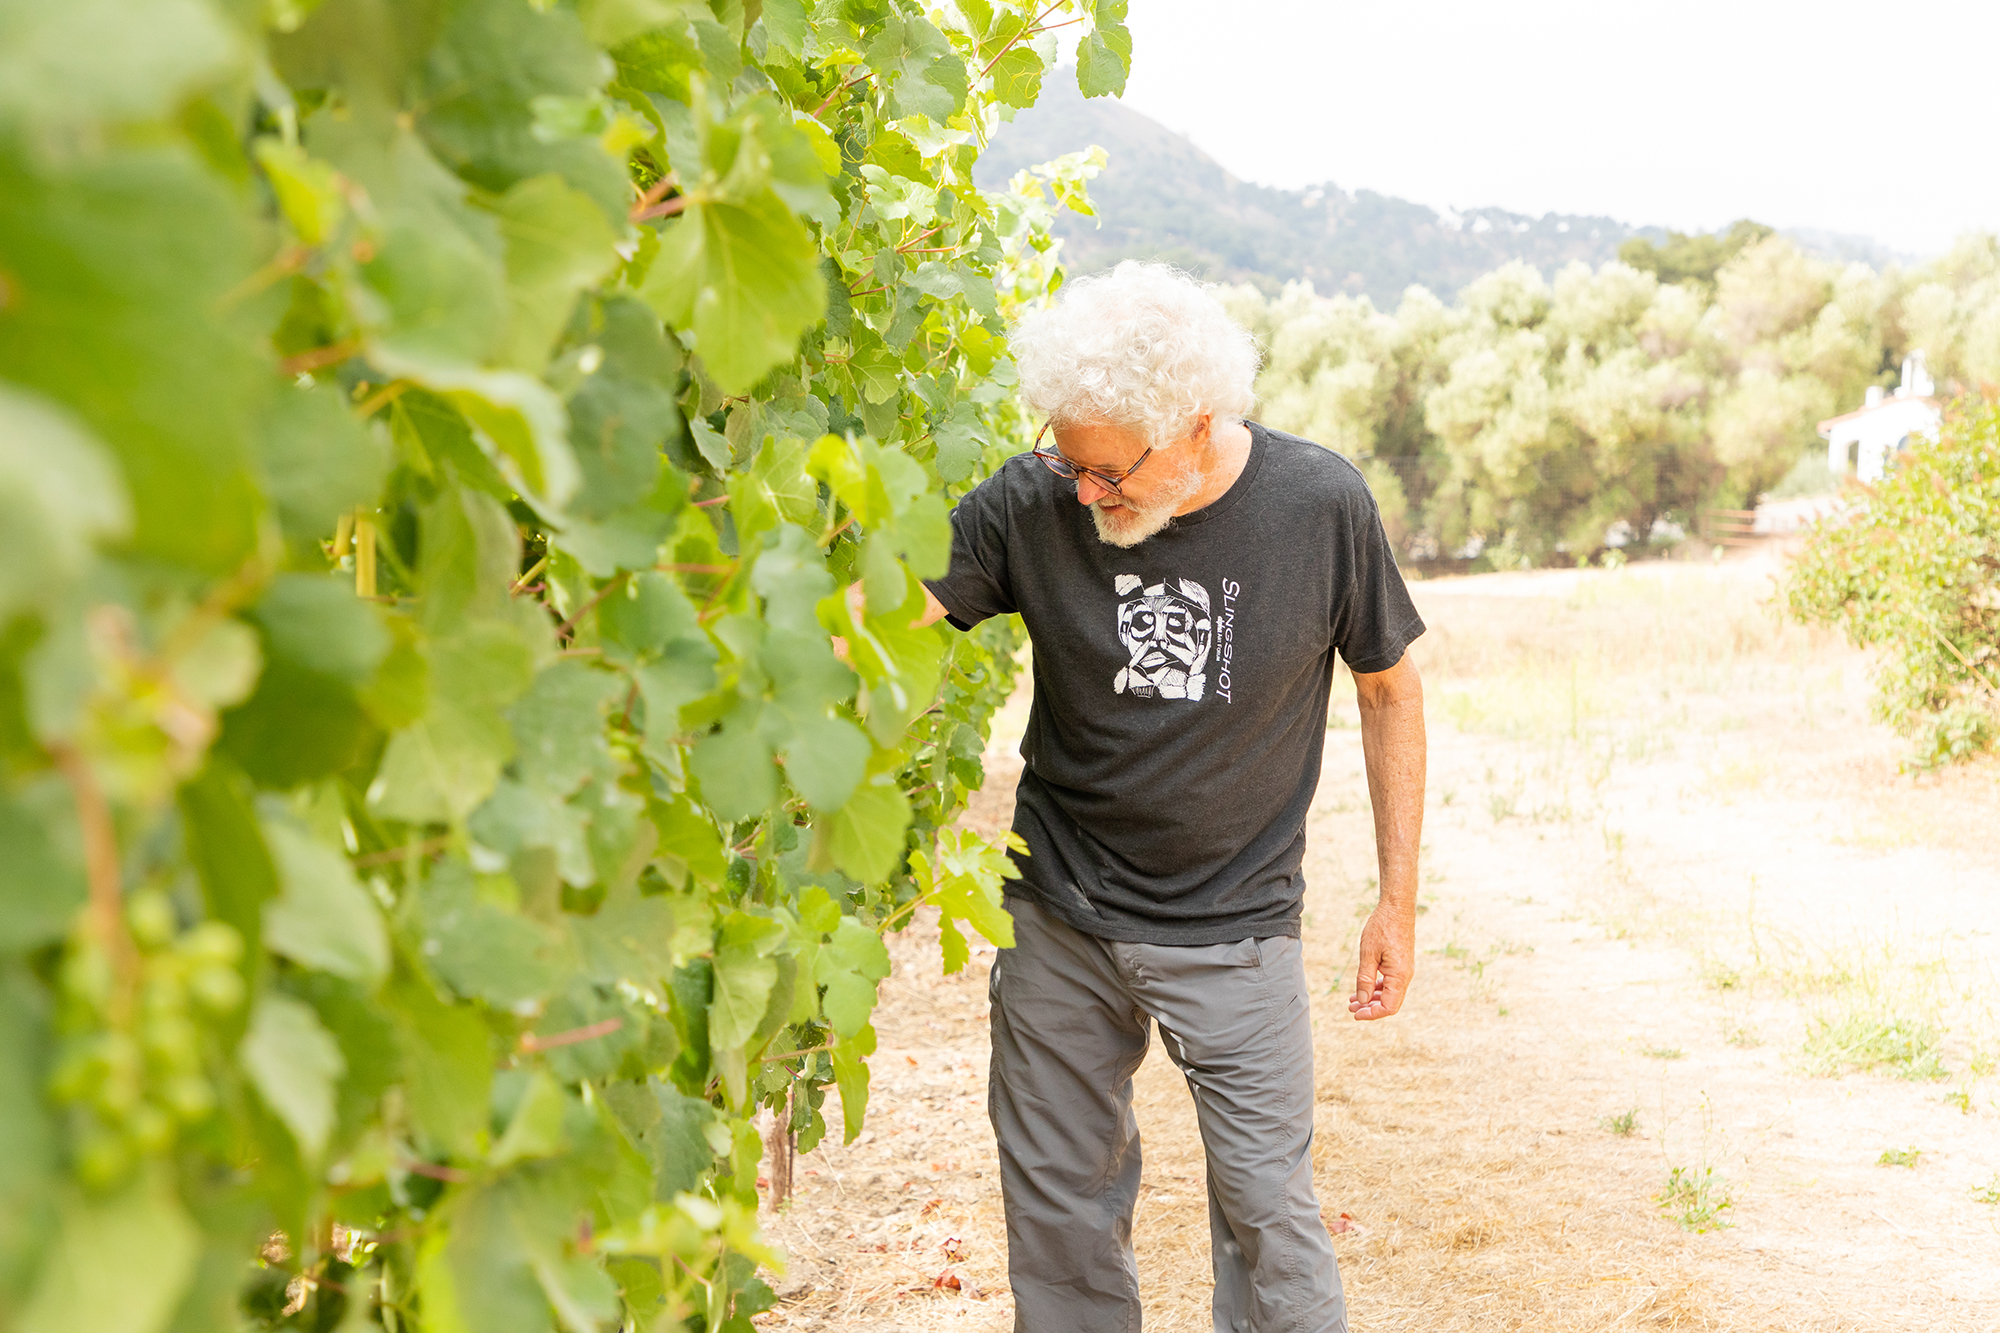 UPDATE: The hybrid varietals planted at our vineyard in Ojai, as reported by Wine Enthusiast